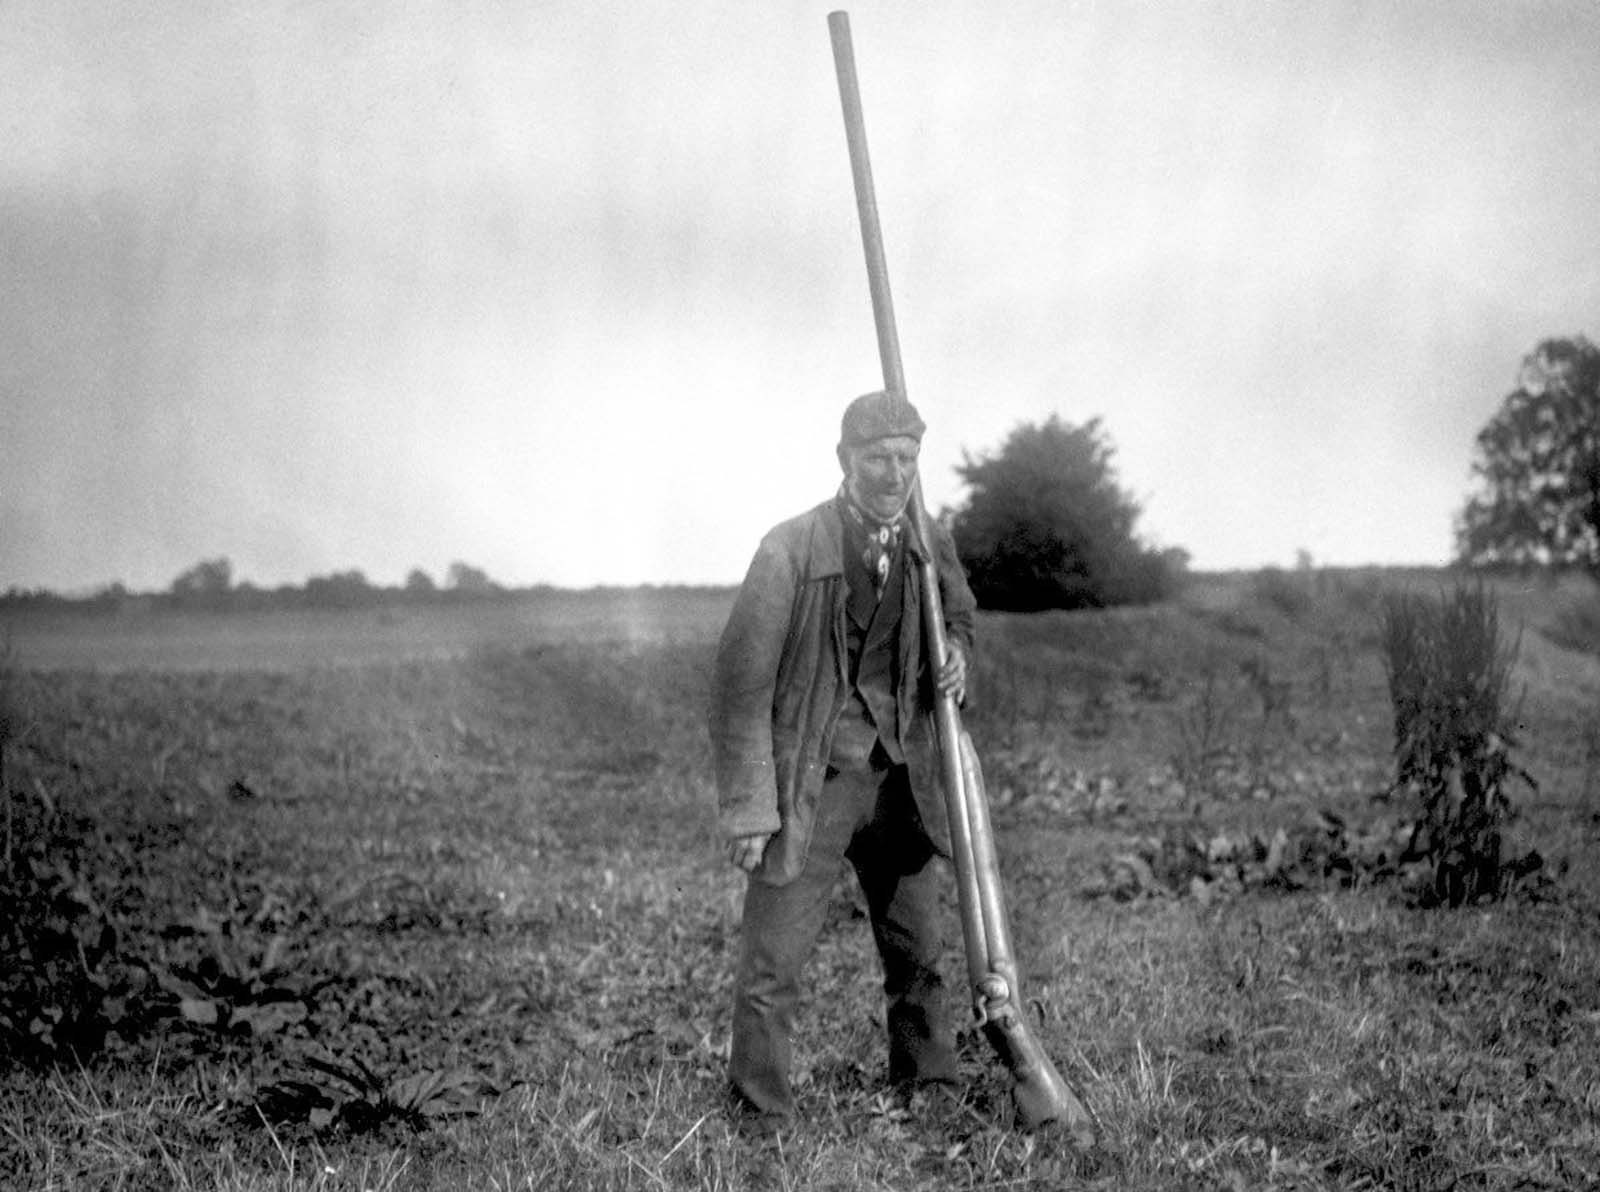 Size comparison of a man and punt gun. 1910.